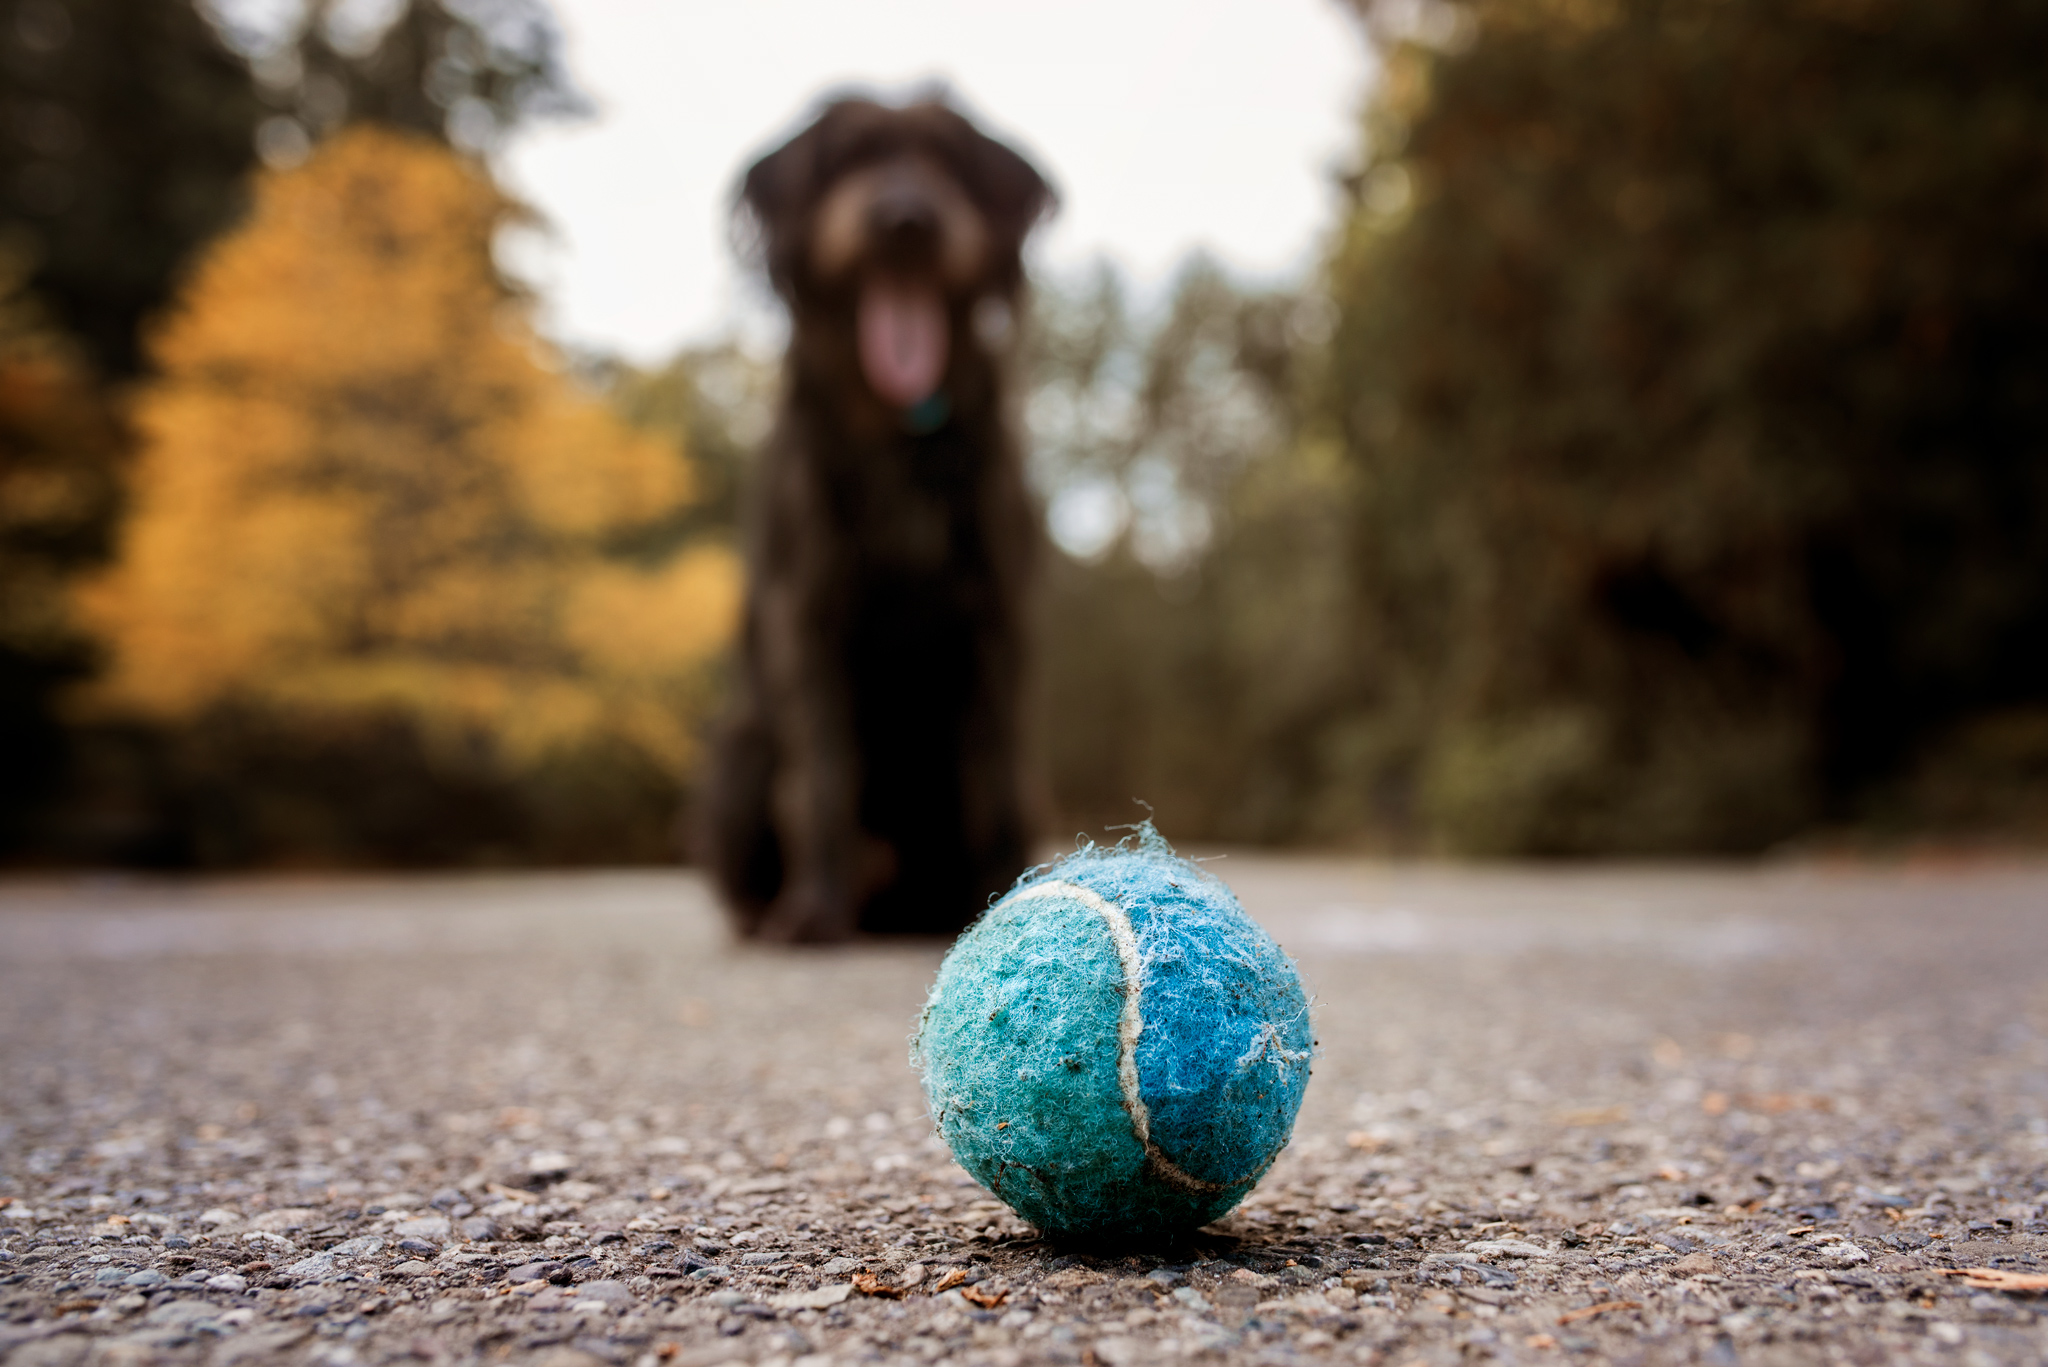 day 16 {a dog and her ball}